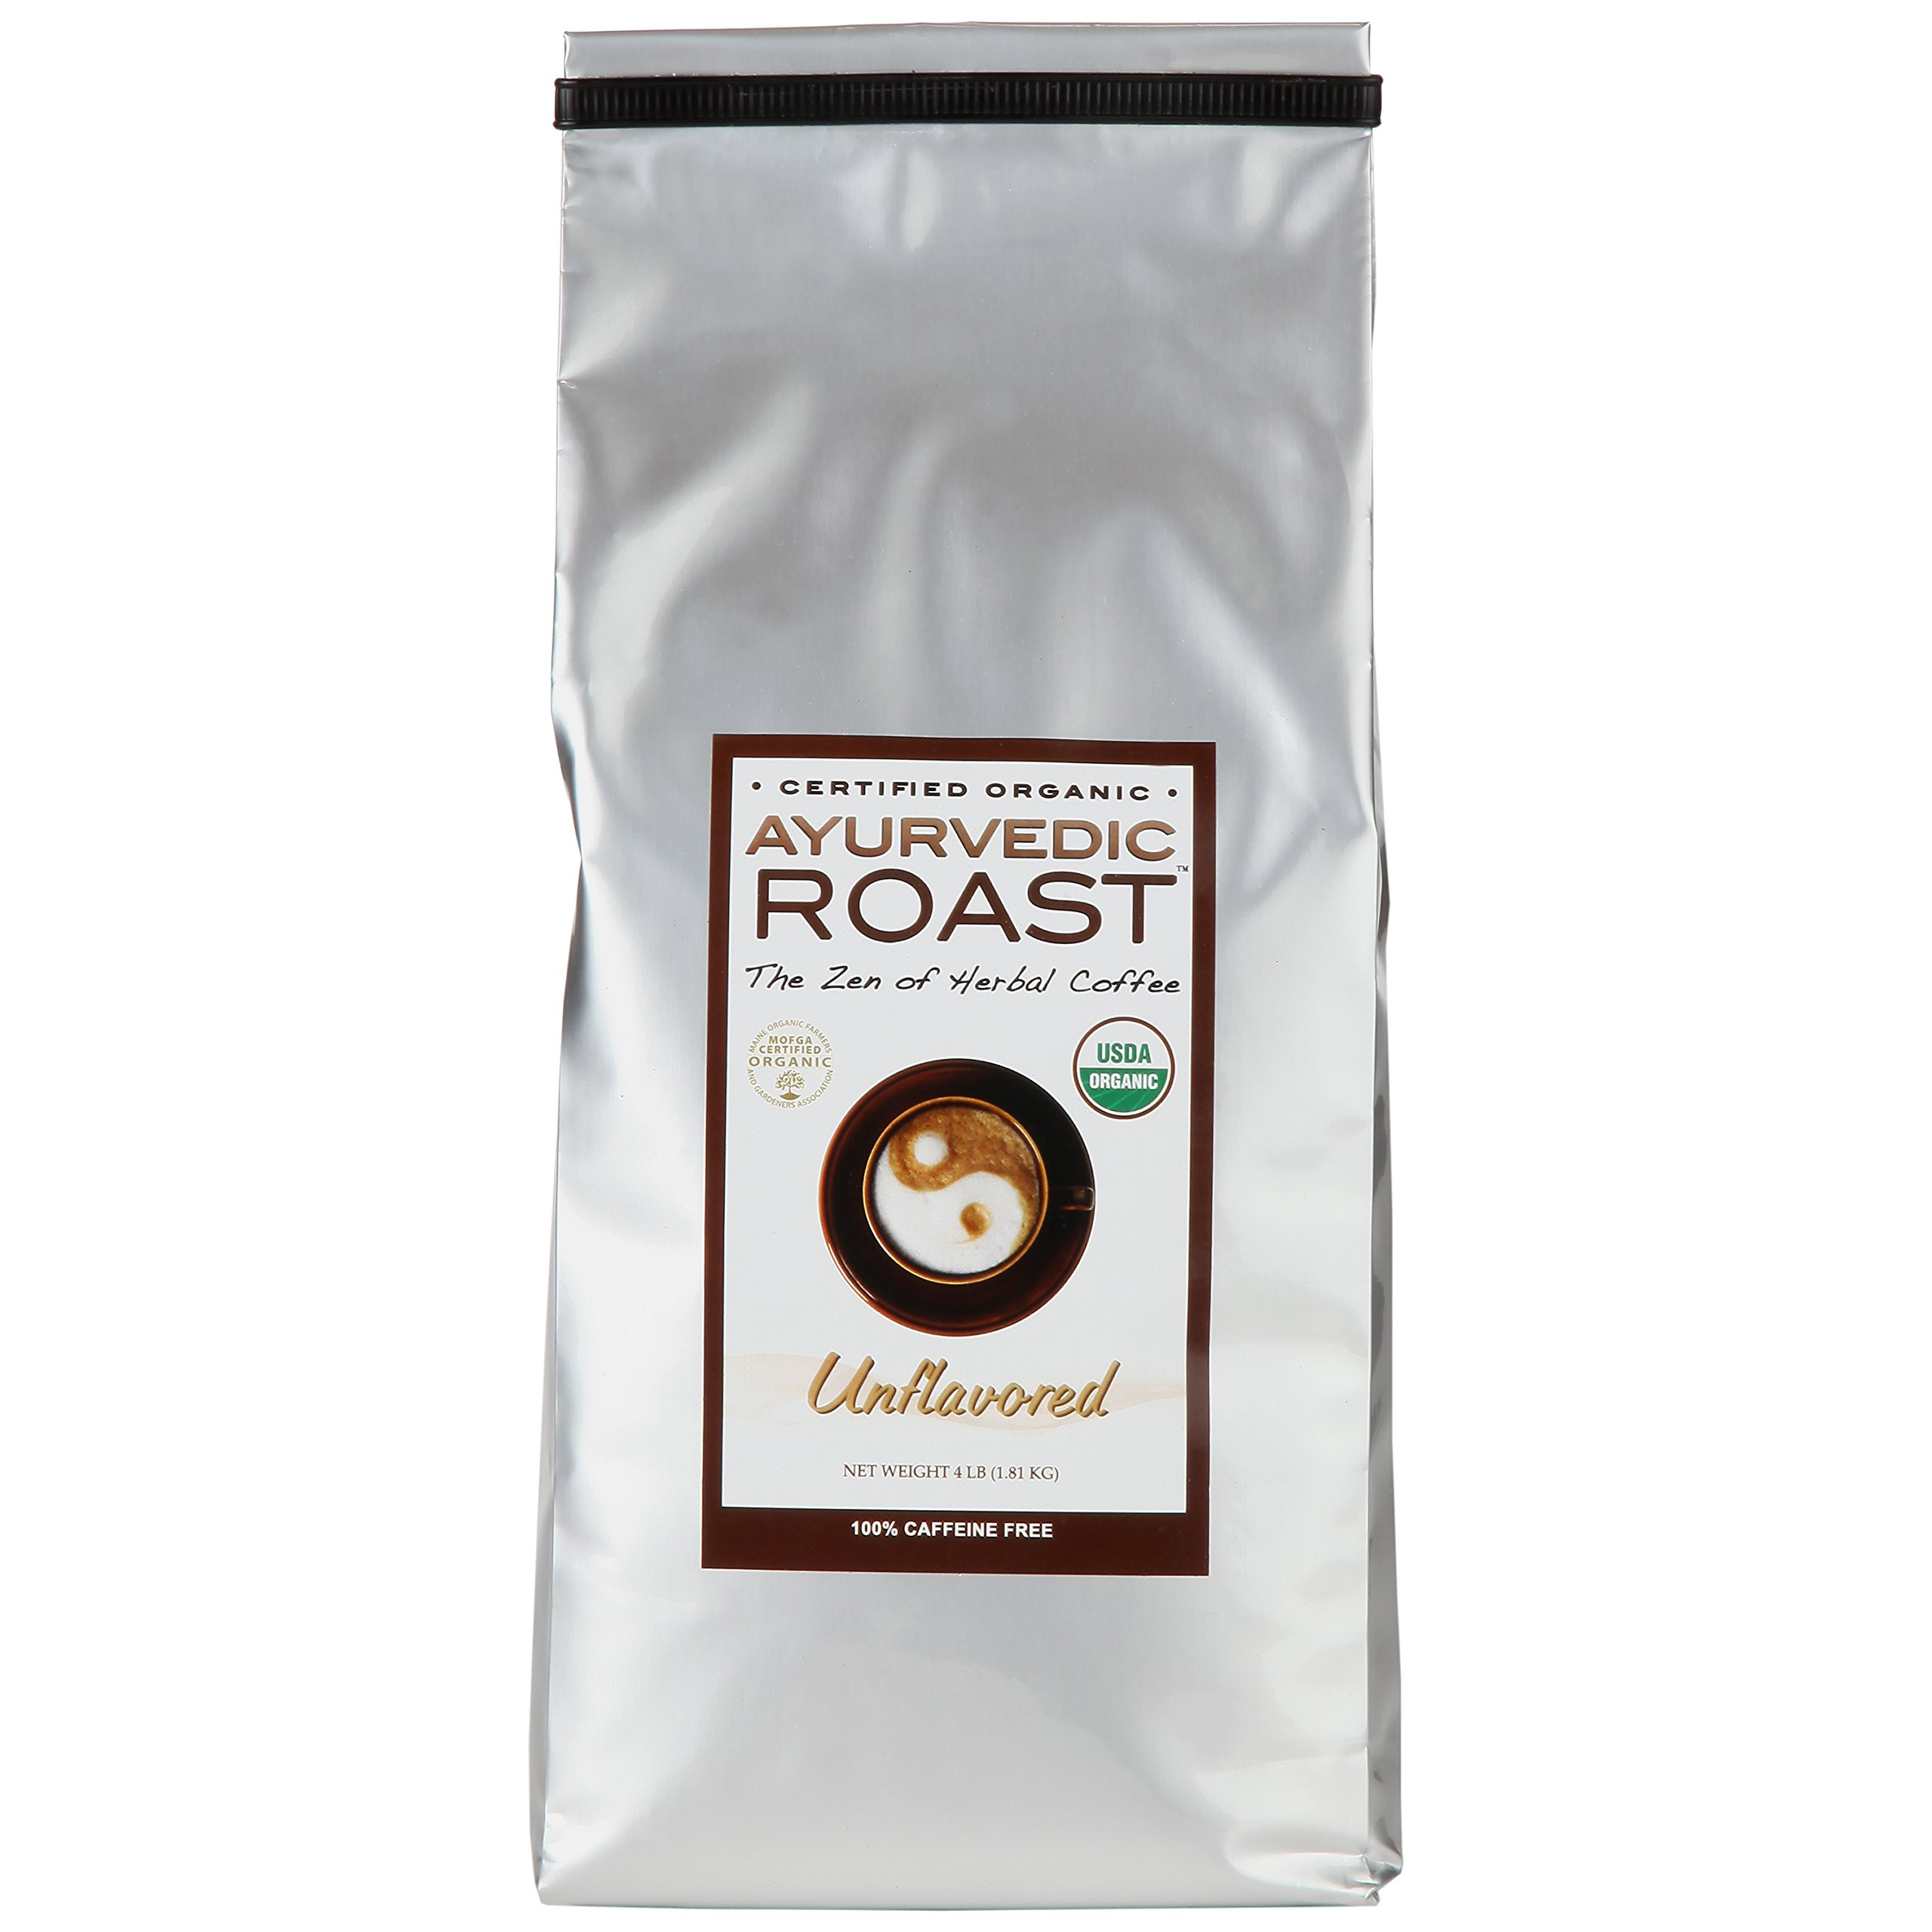 Organic Caffeine-free Coffee Substitute By Ayurvedic Roast - GMO free, Vegan Herbal Coffee - Unflavored 4lb